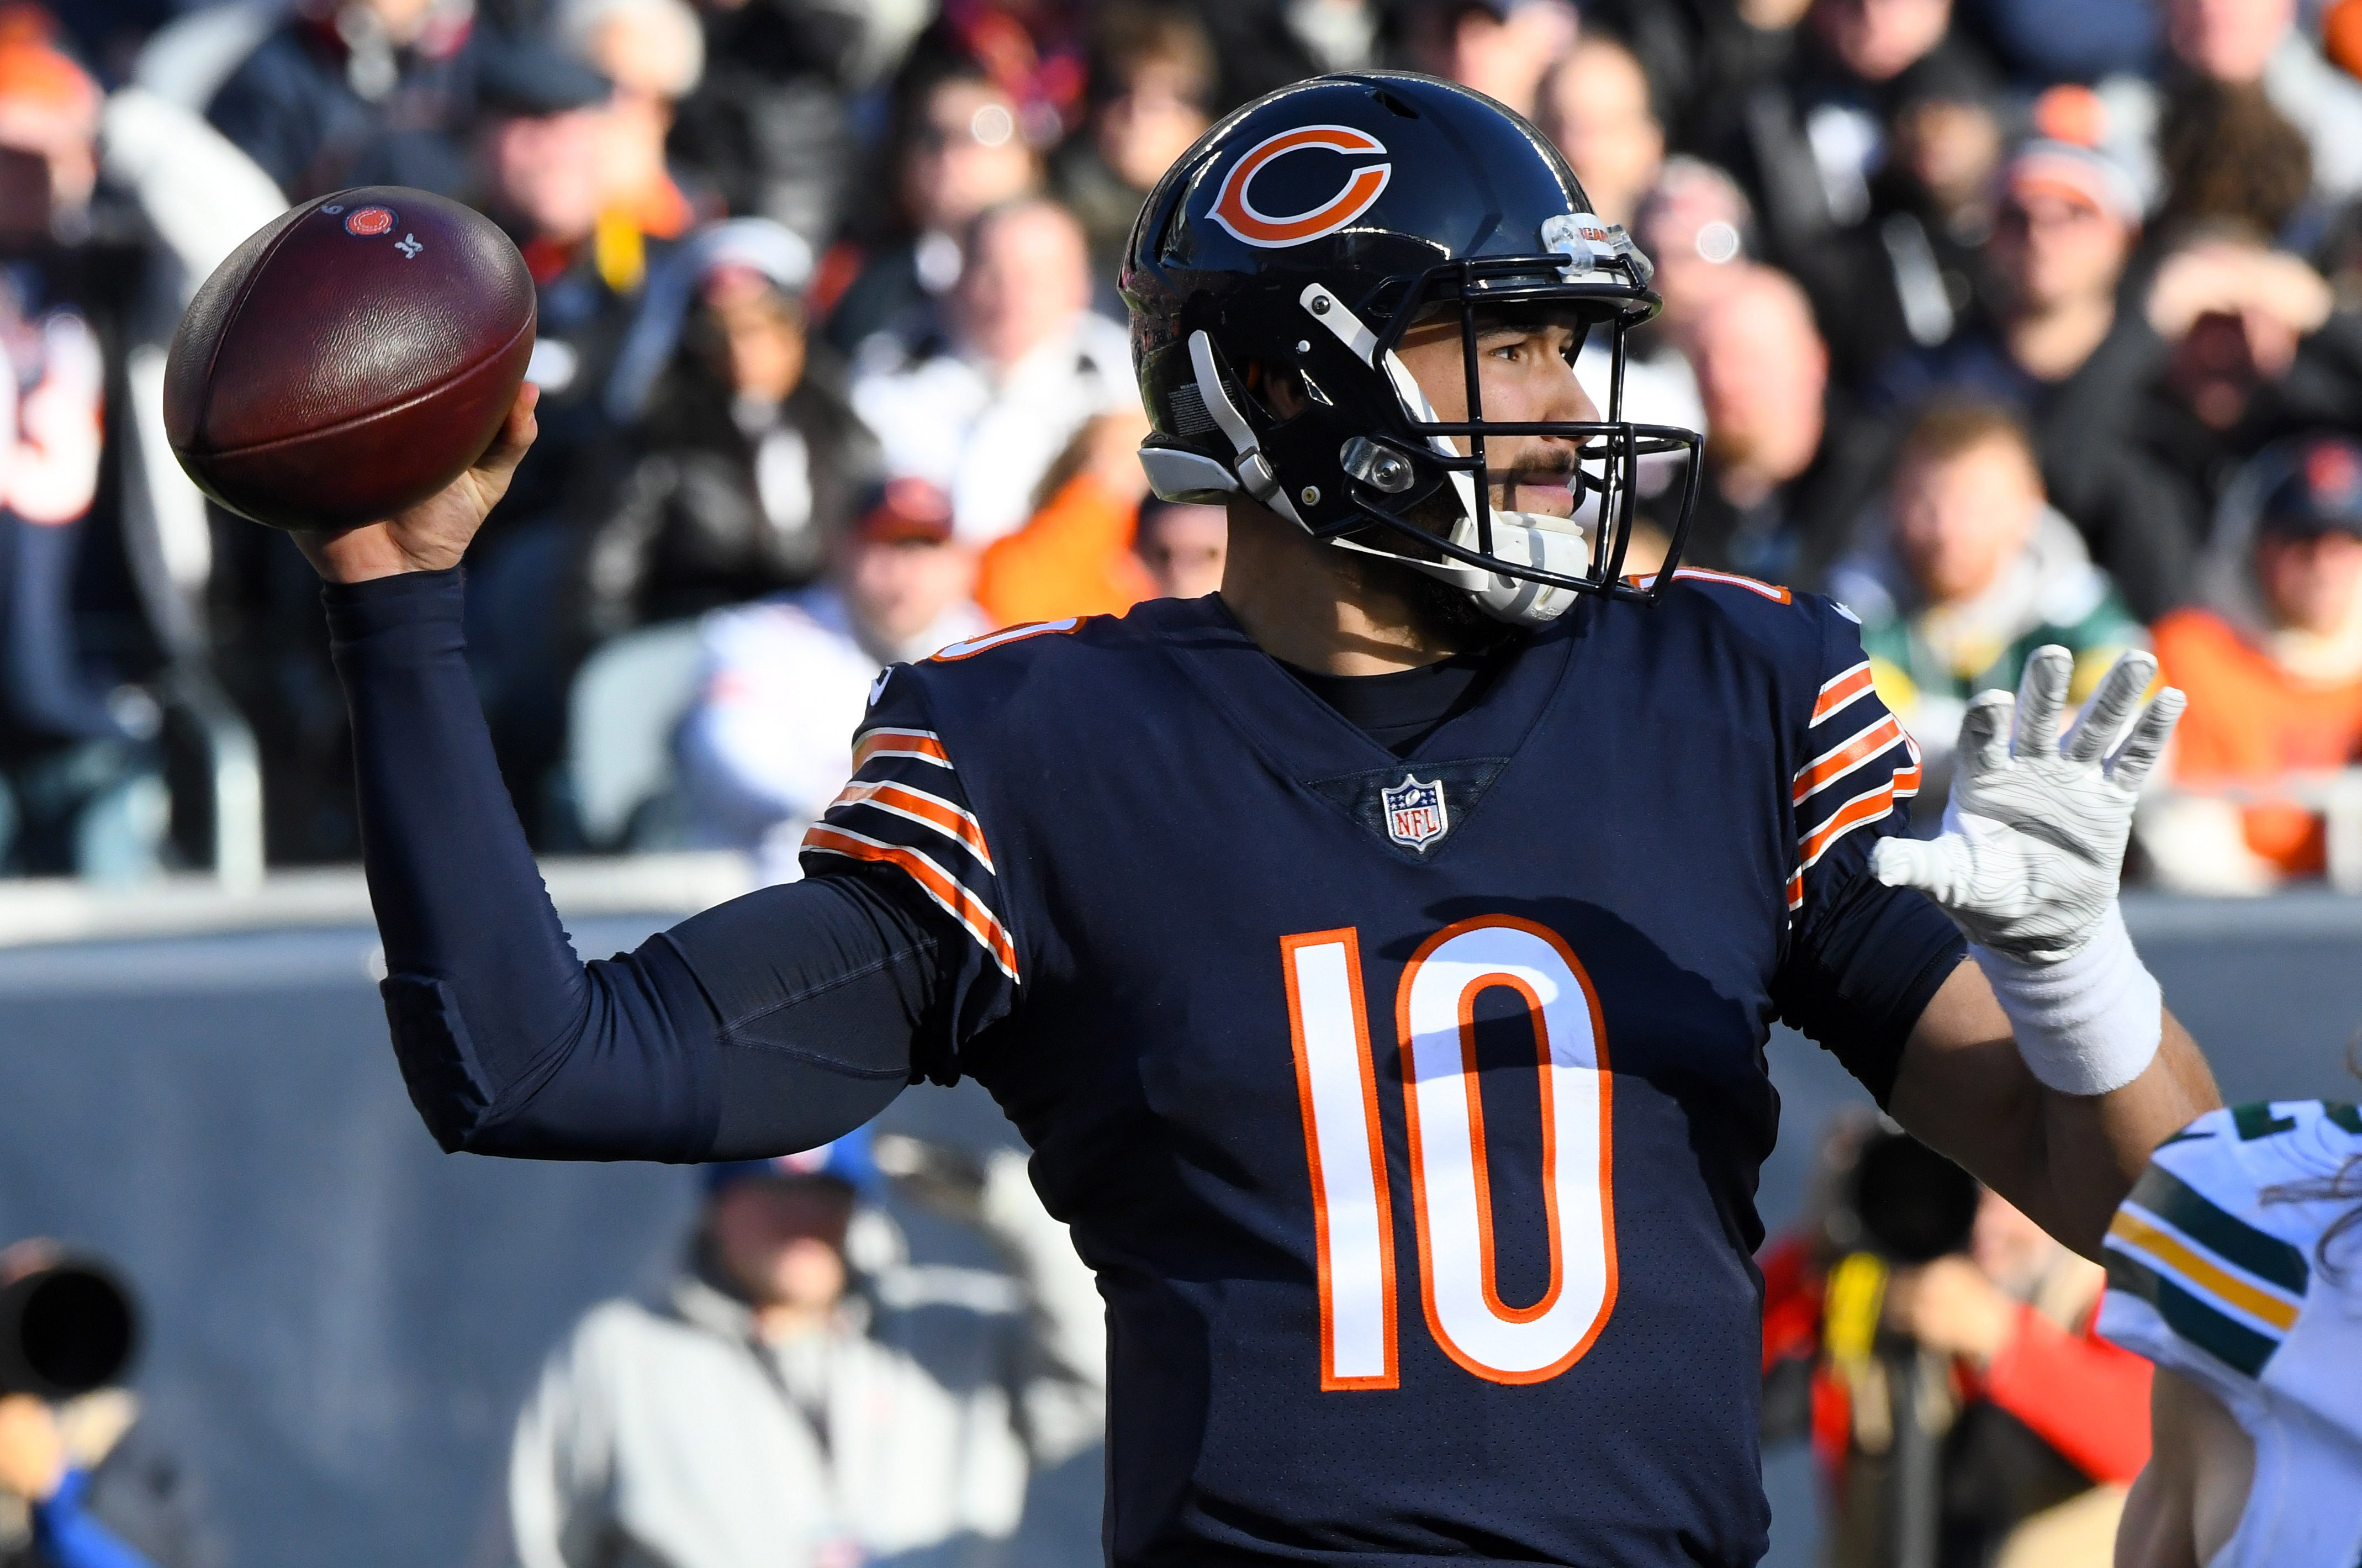 c9aed8a6bf8e9 Jackson, Trubisky lead Bears to NFC North title - Packers Maven